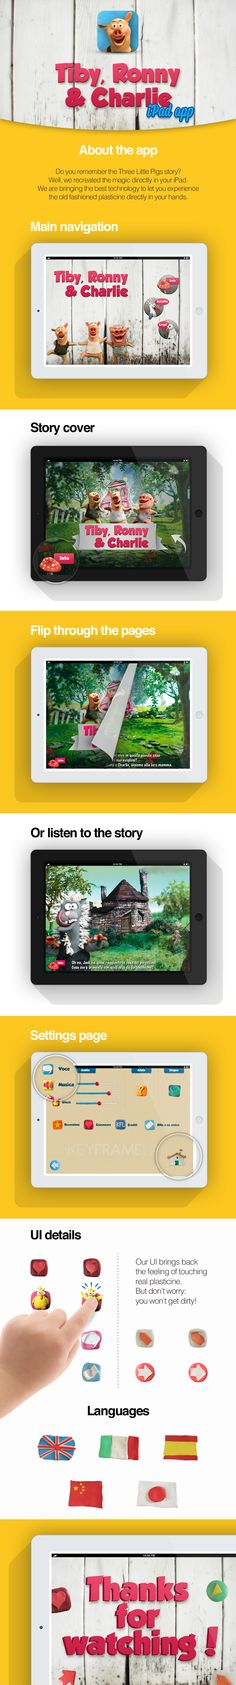 IPAD APPLICATION: Do you remember the Three Little Pigs story? Well, we recreated the magic directly in your iPad. We are bringing the best technology to let you experience the old fashioned plasticine directly in your hands. www.gigasweb.it